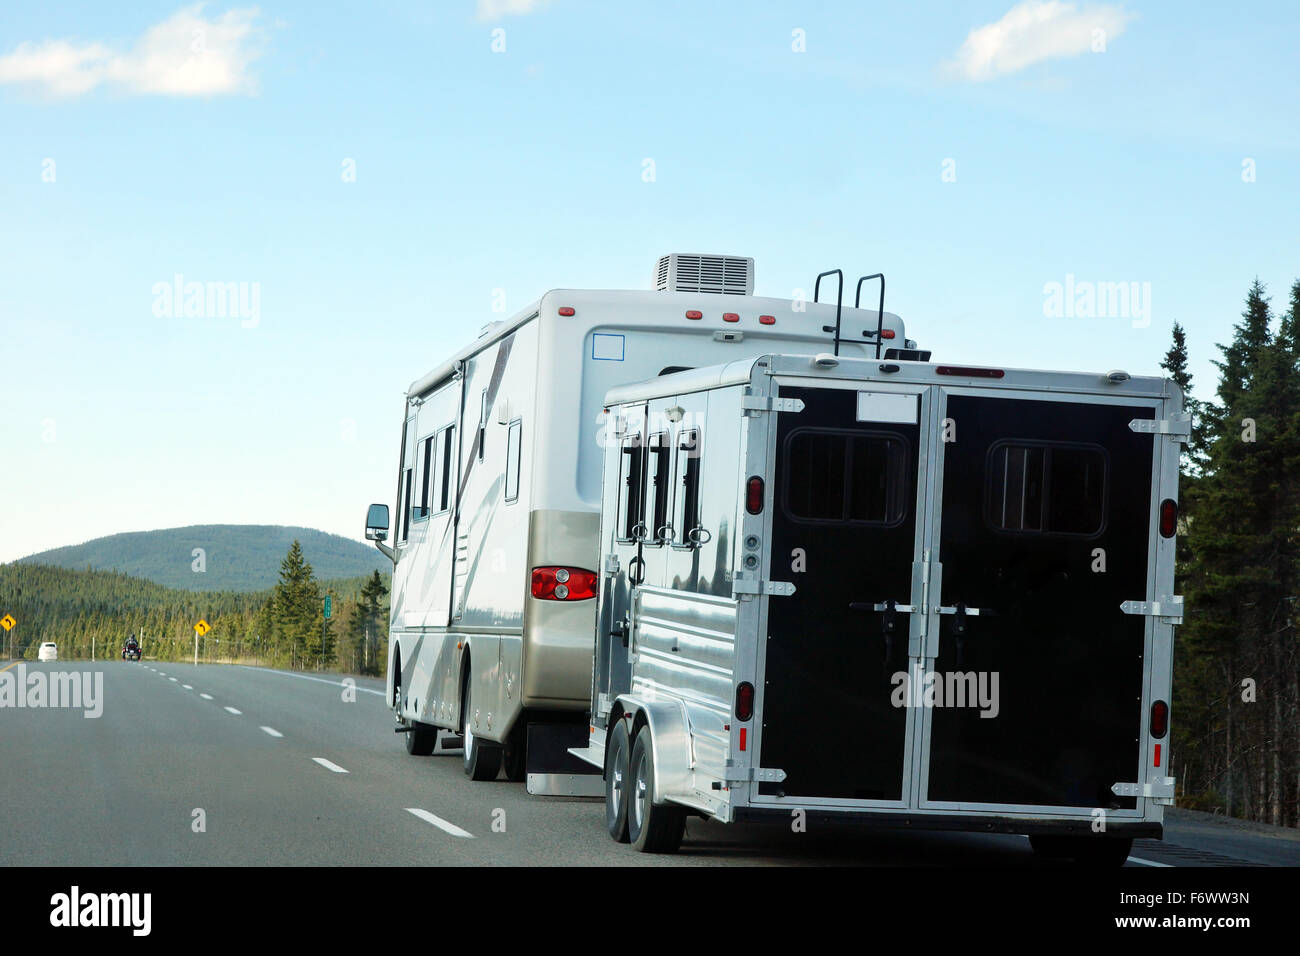 RV or motor home with trailer on the road, vacation and summer concept - Stock Image